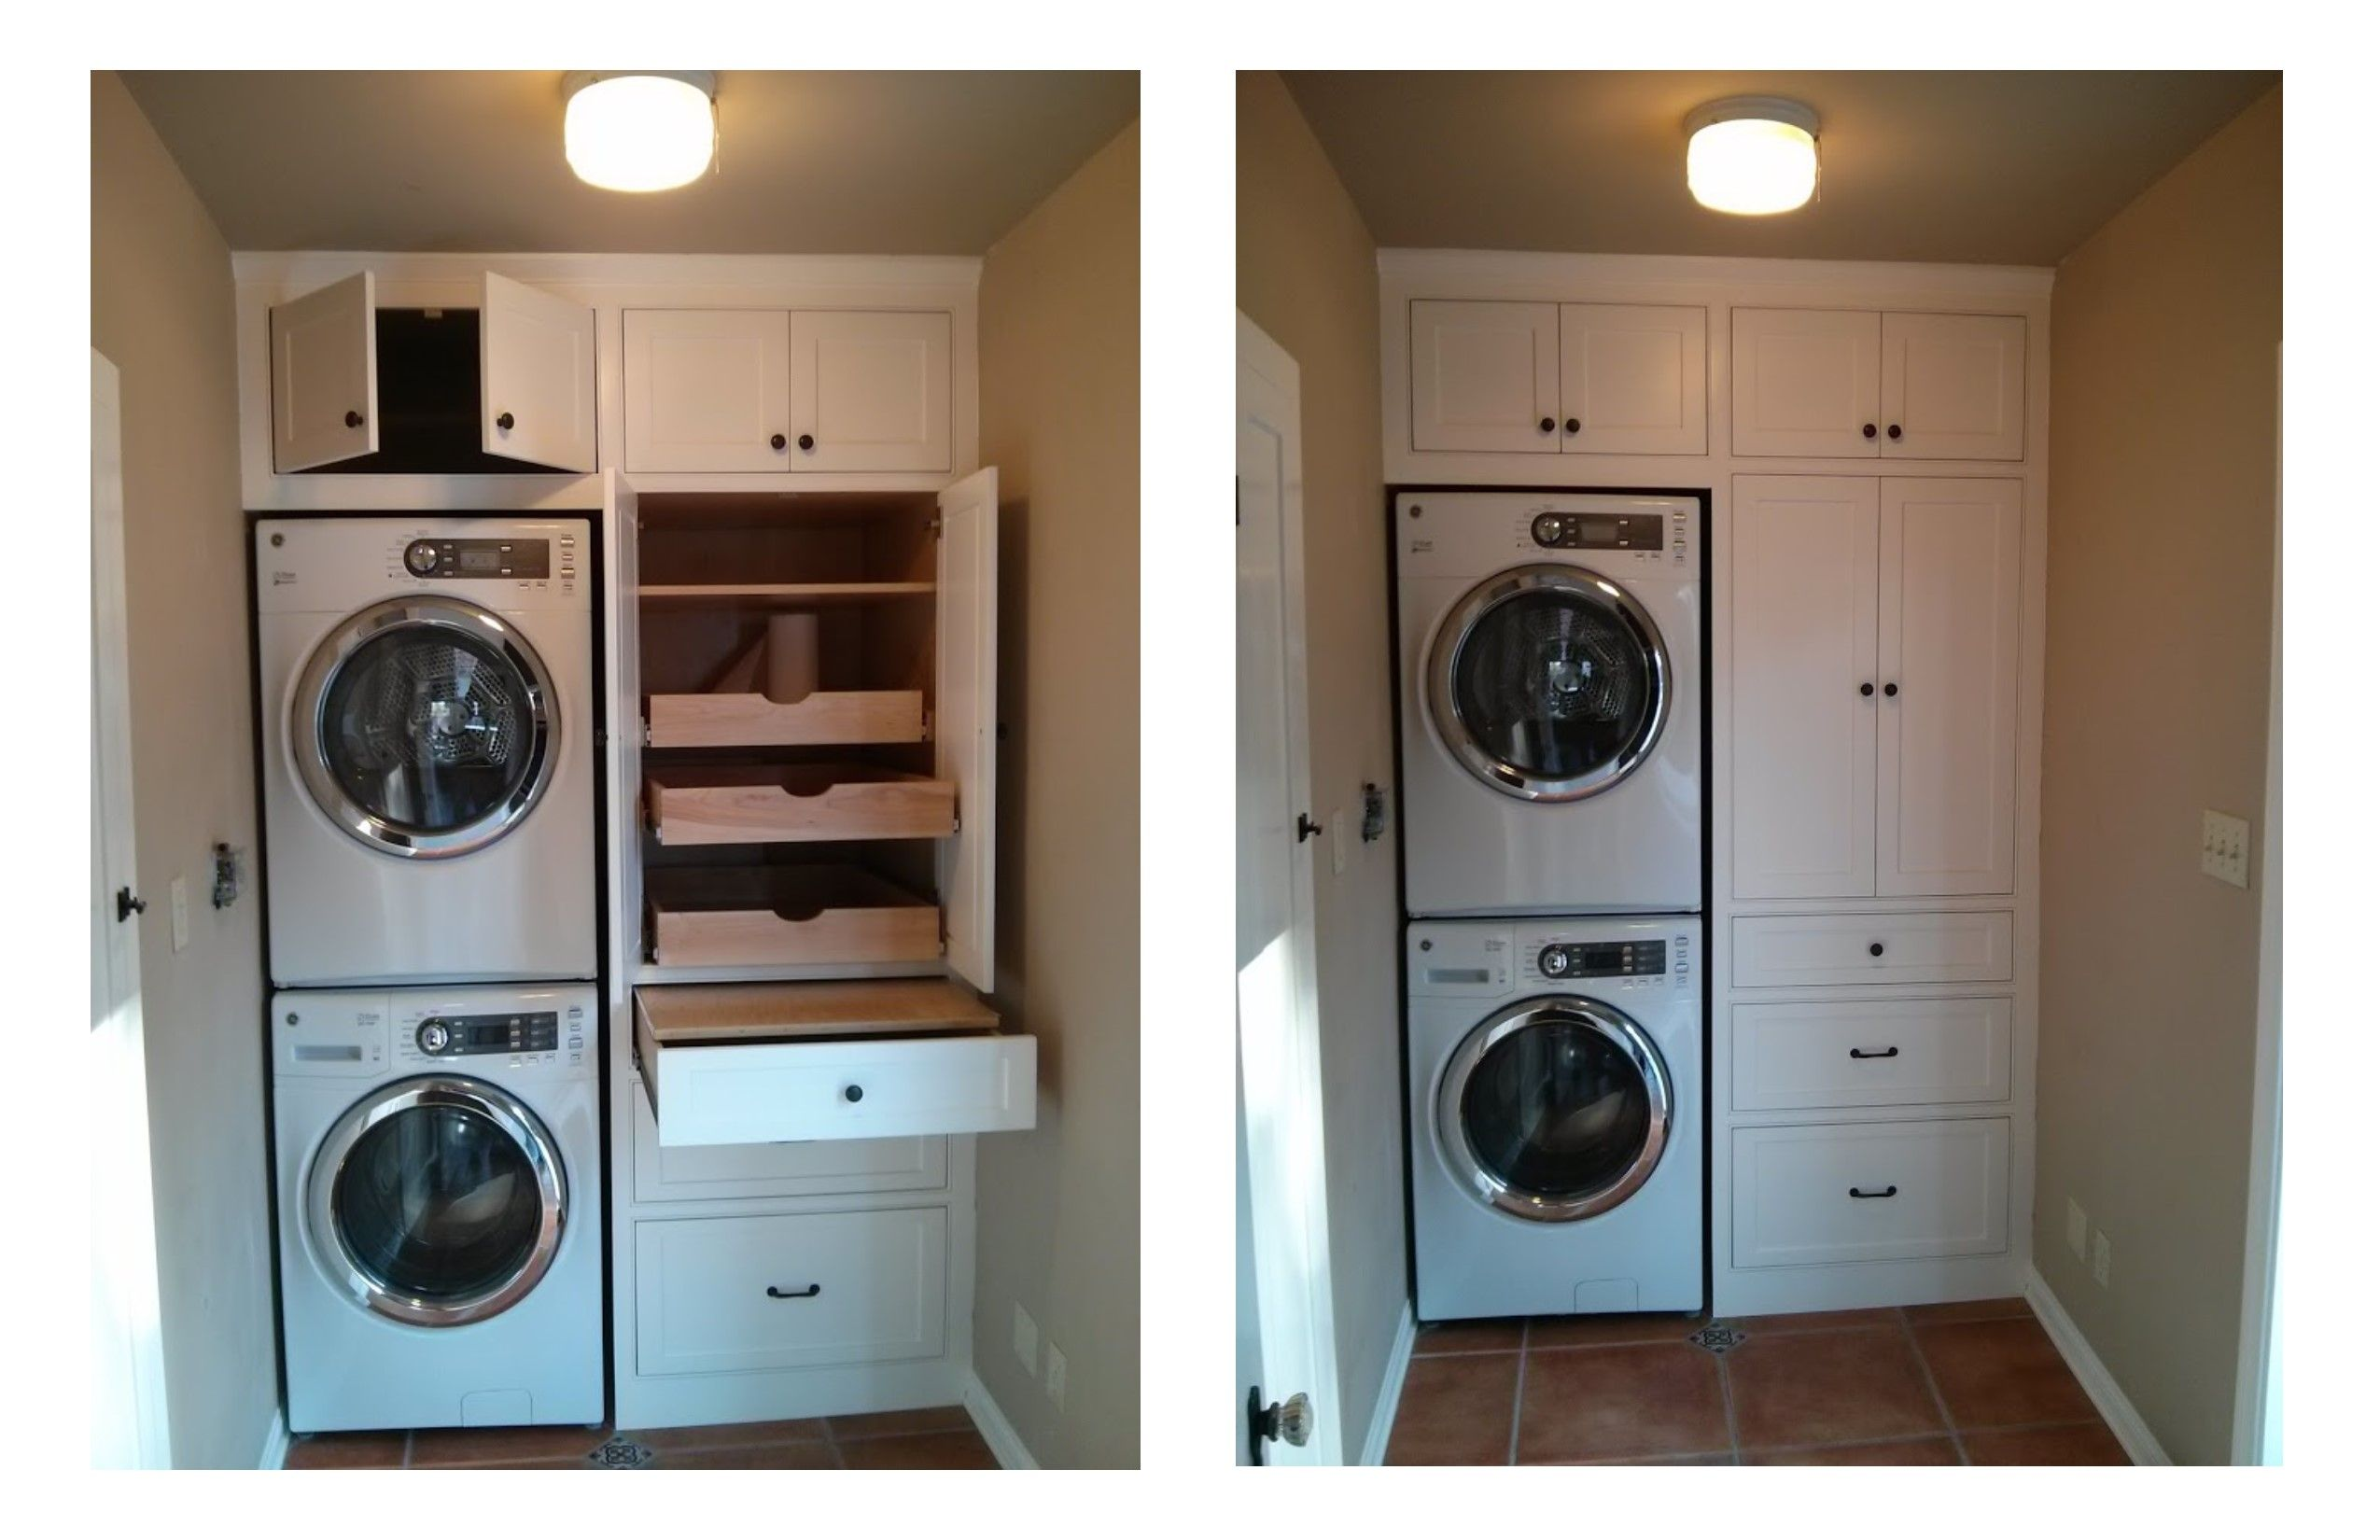 This Is A Built In Laundry Cabinet This Cabinet Has A Hidden Folding Table In The Top Drawer Open Plan Kitchen Living Room Laundry Cabinets Laundry Mud Room